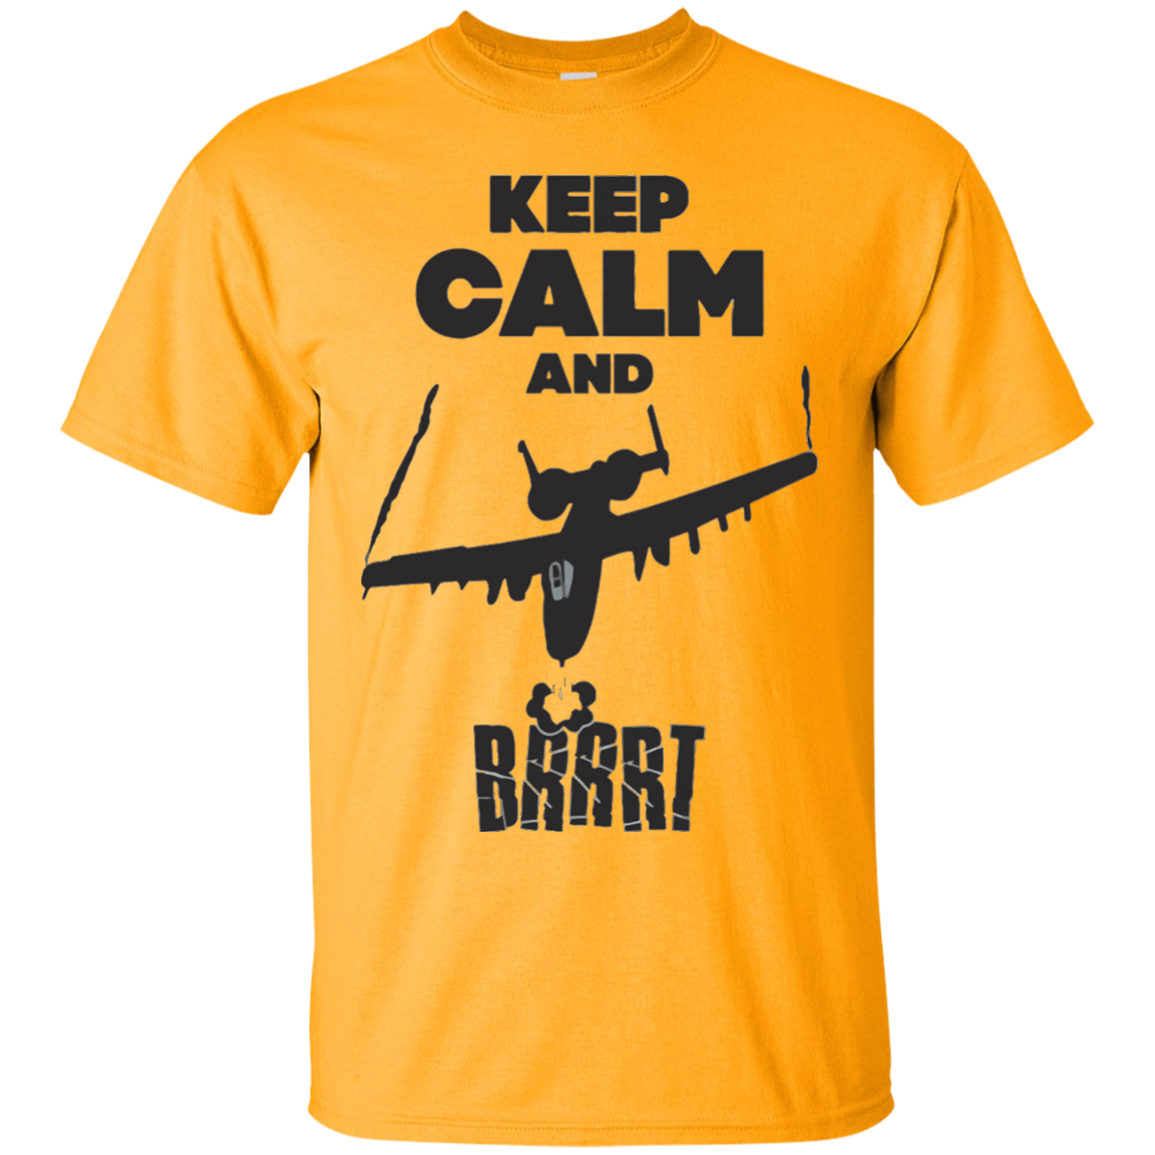 A-10 Warthog Keep Calm TShirt – T-Shirt